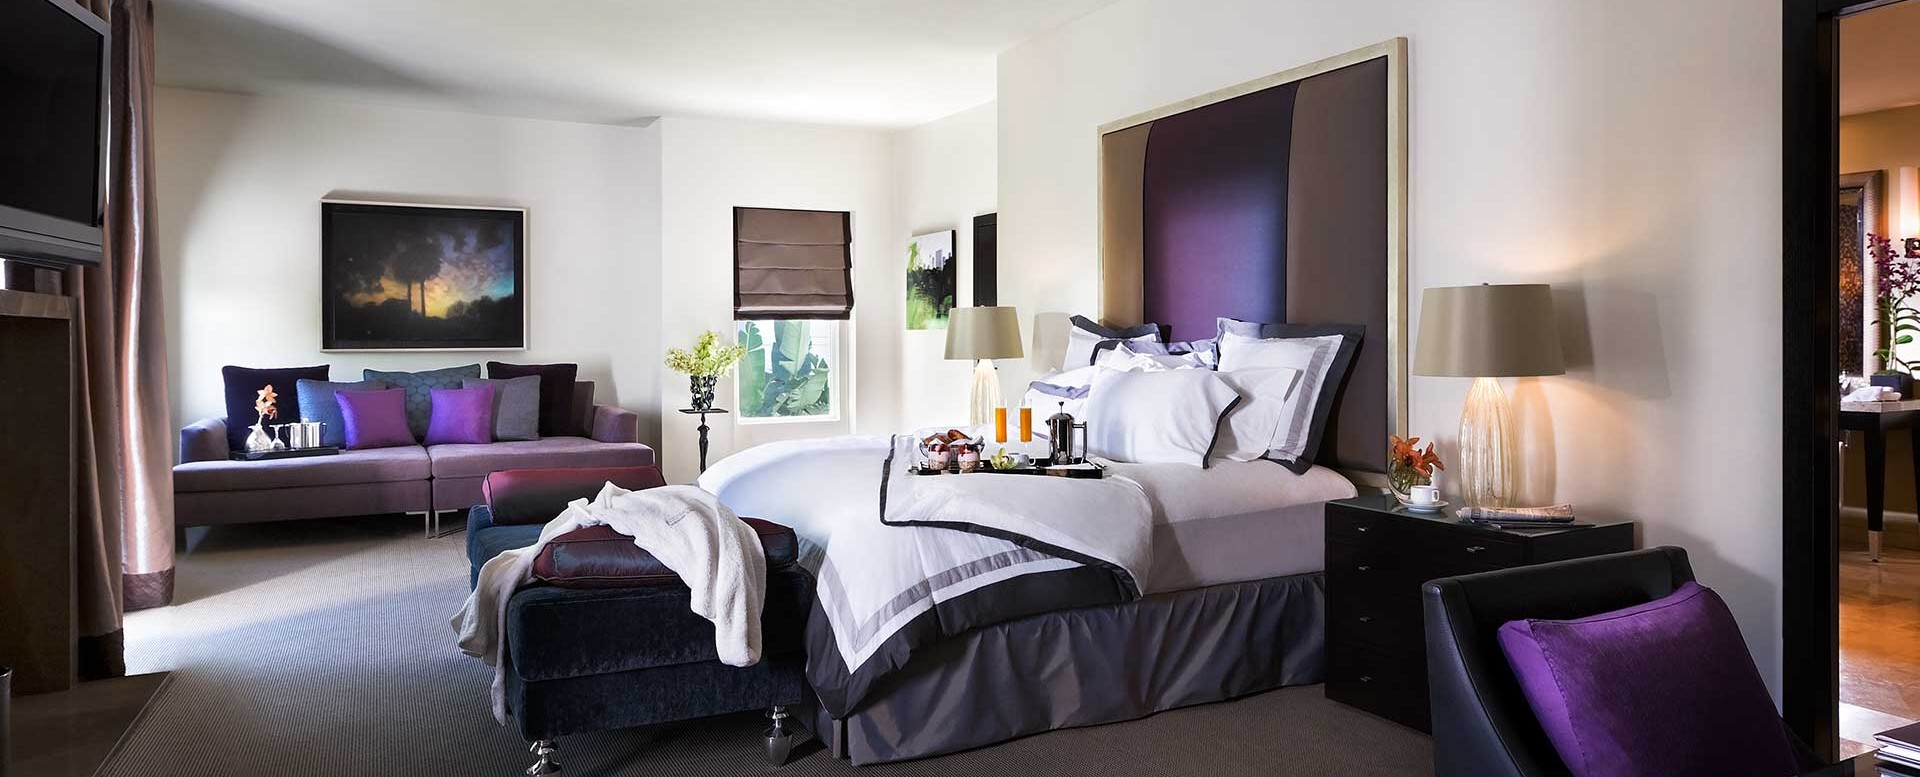 Sunset Marquis Hotel - President Suite master bedroom